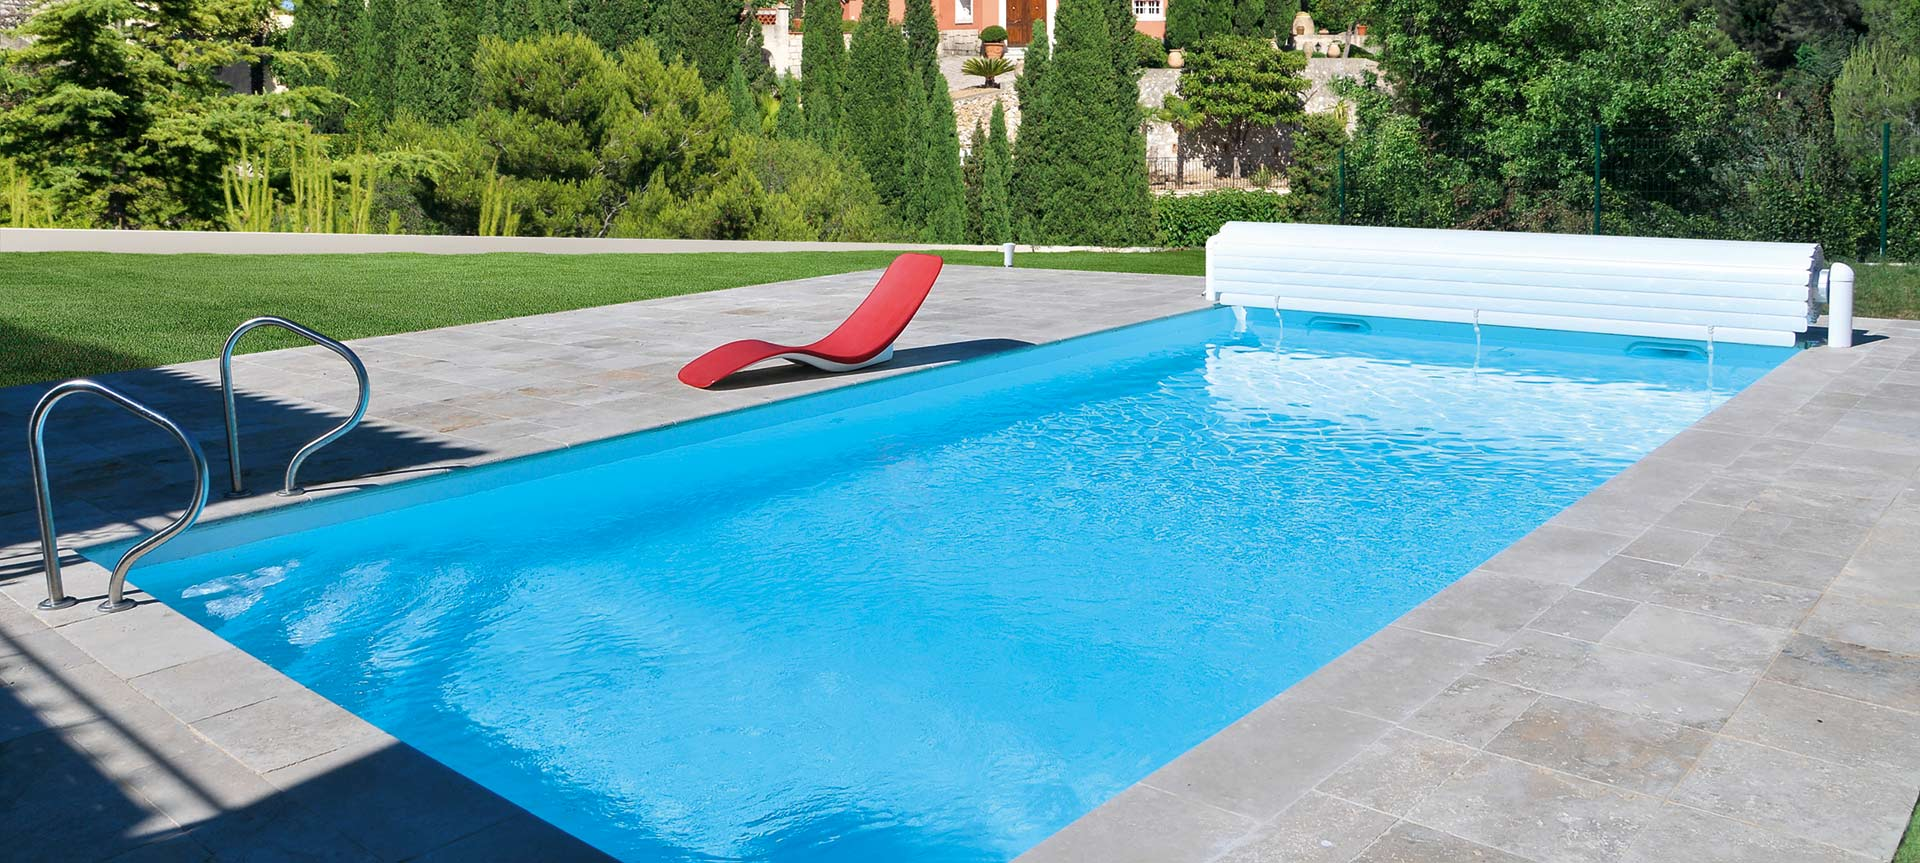 Tanch it des piscines avec liner ou pvc arm marseille for Revetement piscine pvc arme